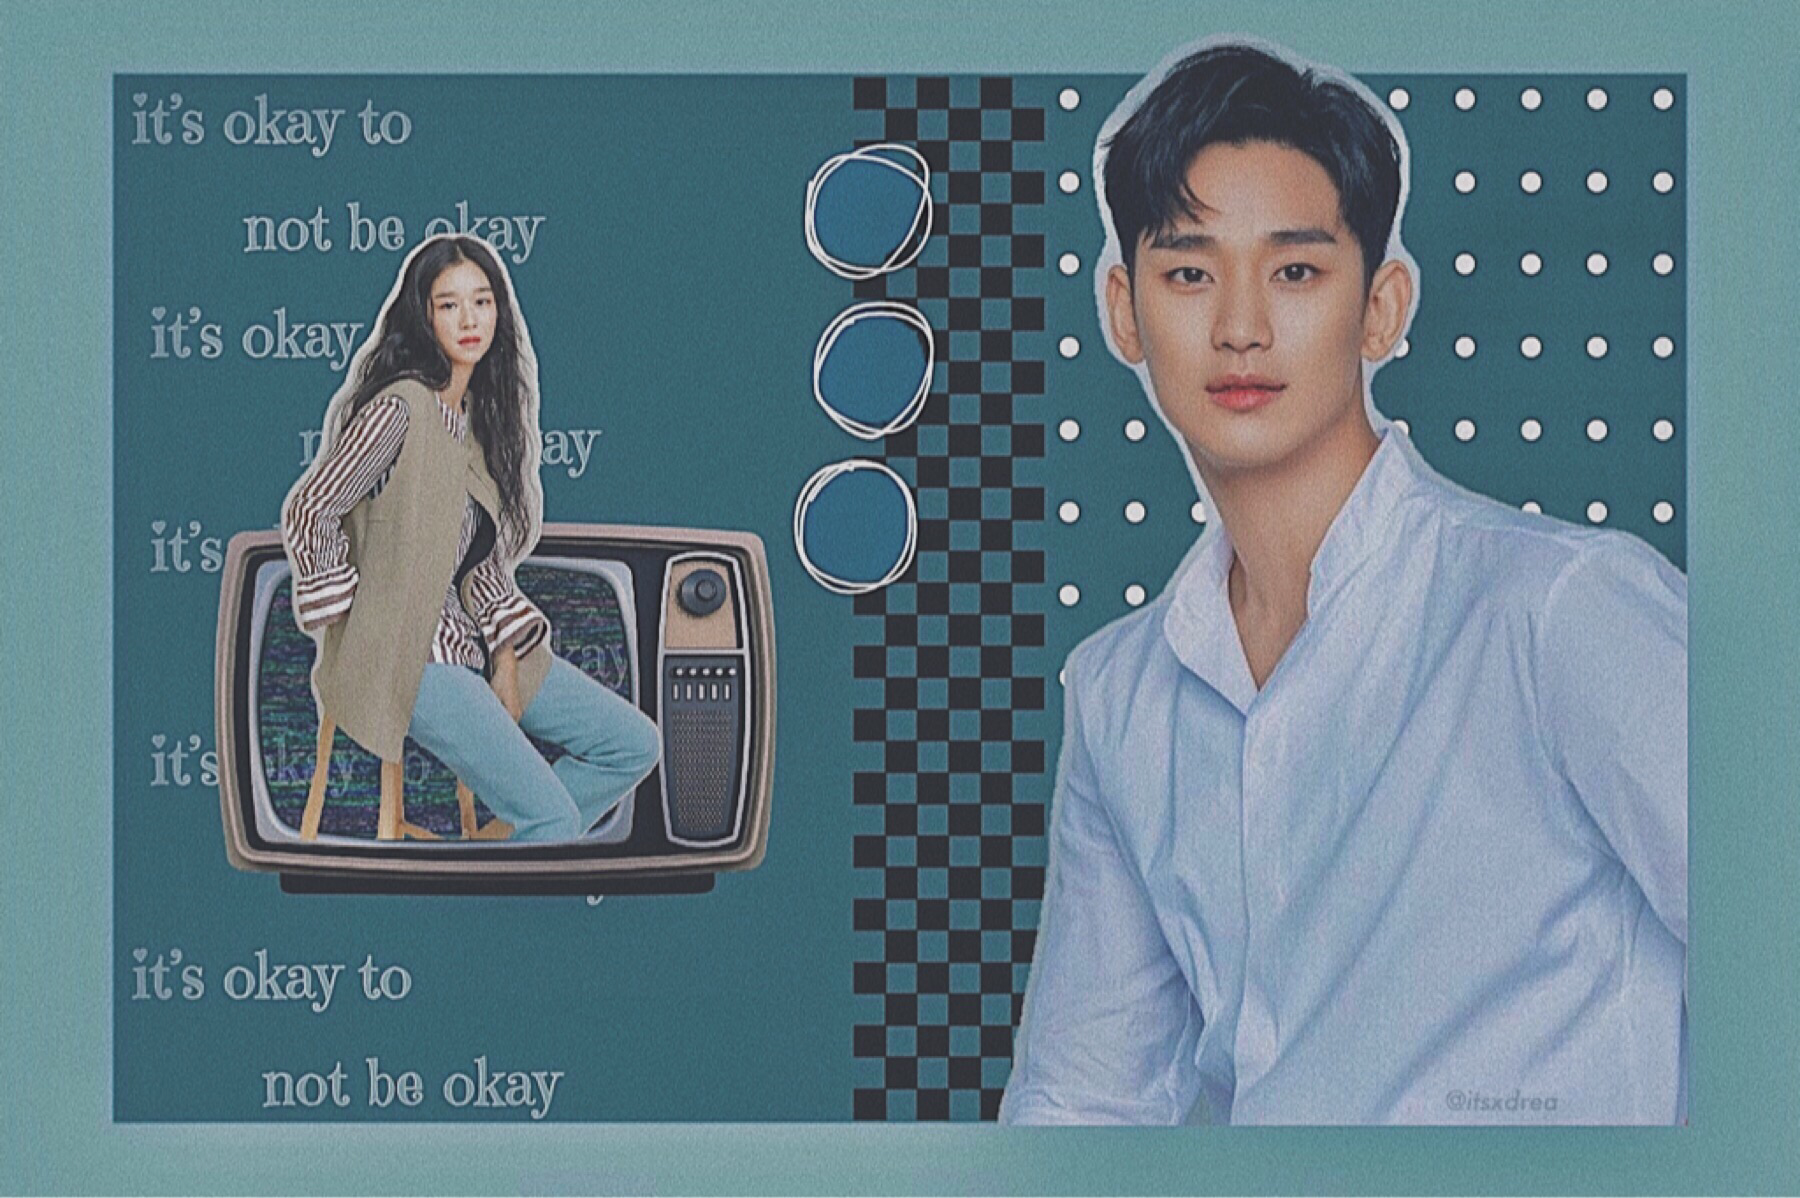 🦚 • kim soo hyun & seo ye ji // actor & actress • | inspired by whi | ur prolly annoyed w my spamming, but i've been dYING to post this. this show is IMMACULATE and kim soo hyun is just *chefs kiss*. kinda sad it's ending, but i highly recommend🤧